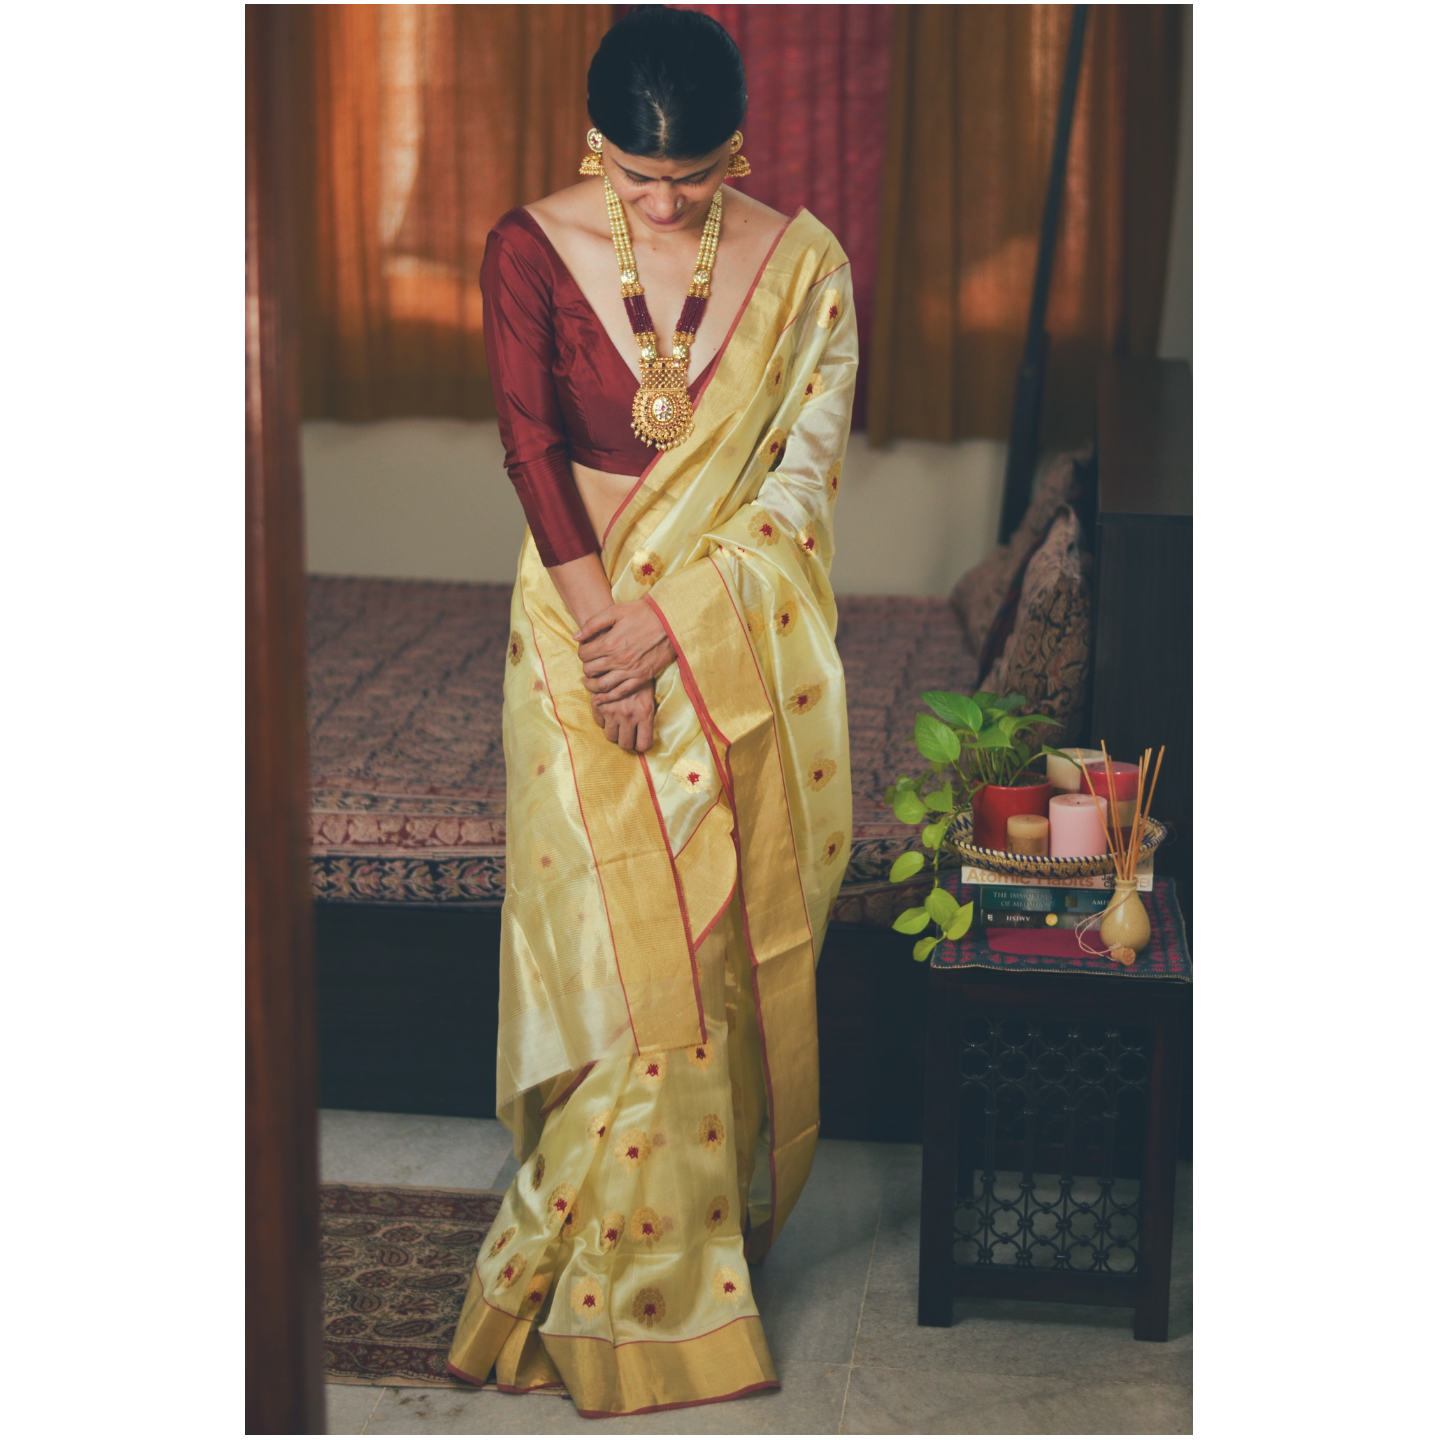 Handwoven chanderi silk saree with gold  border and gold jari  meenakshi motifs.